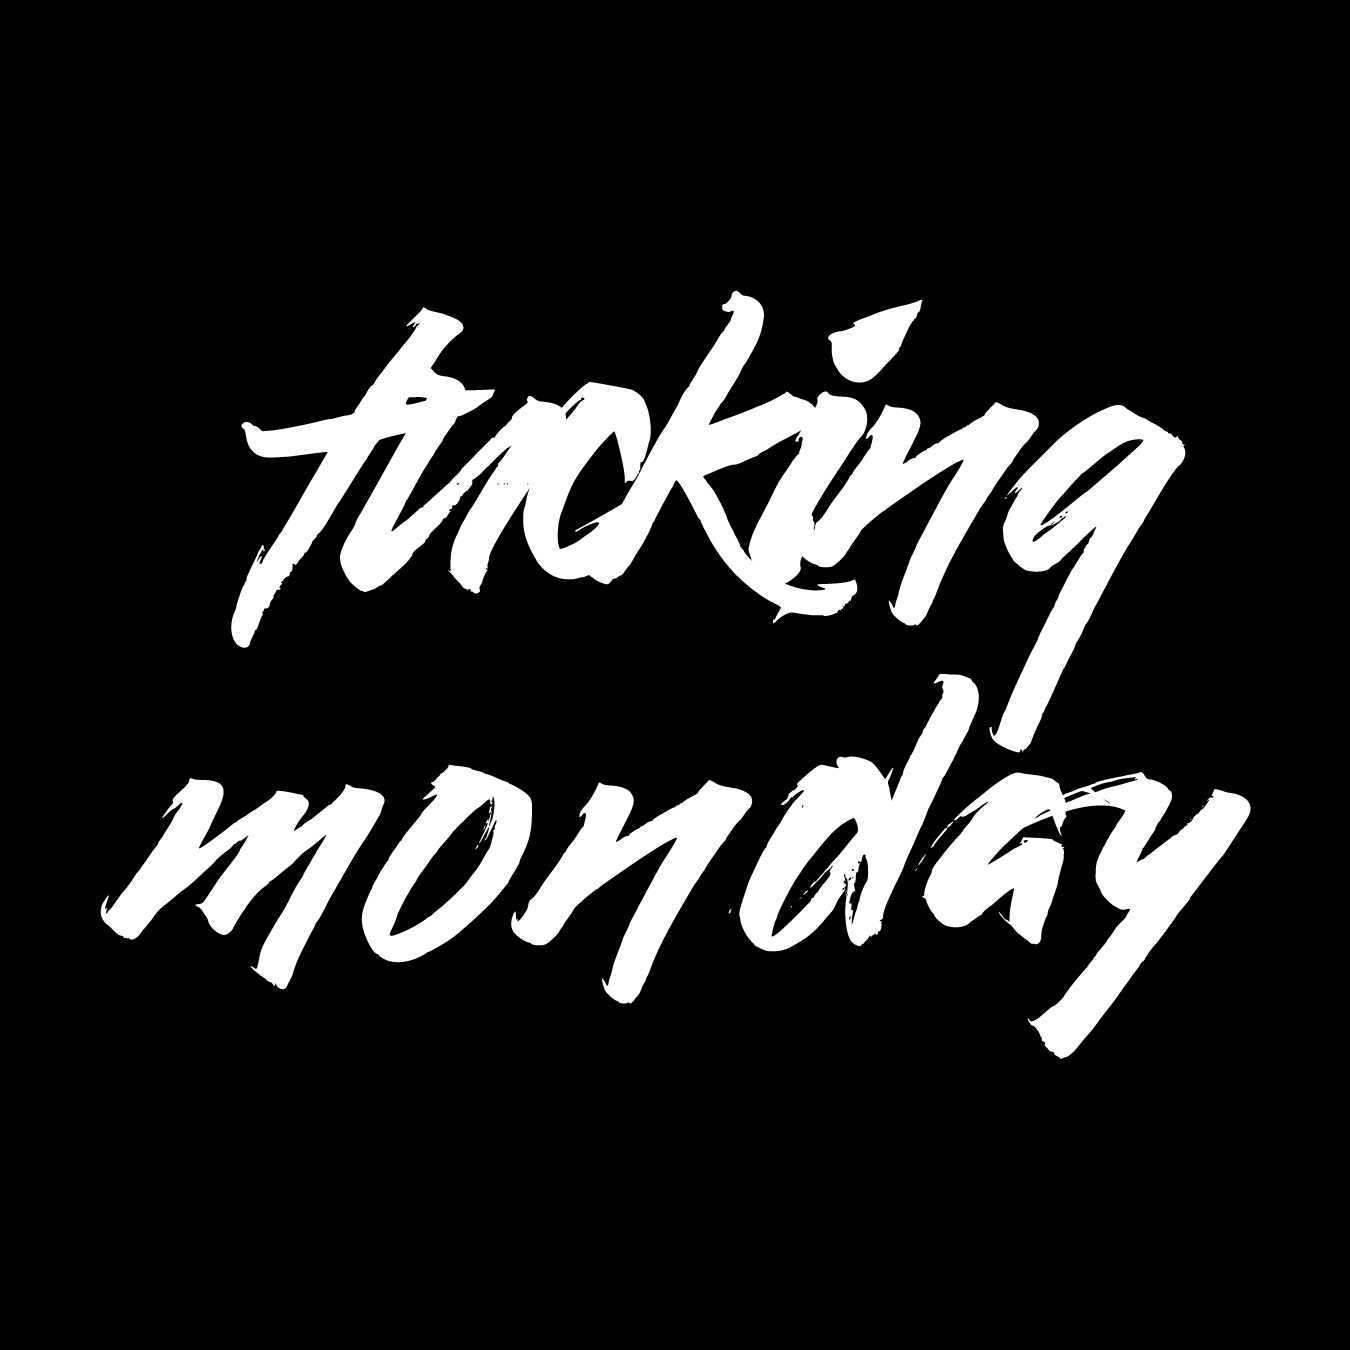 FuckingMonday.com